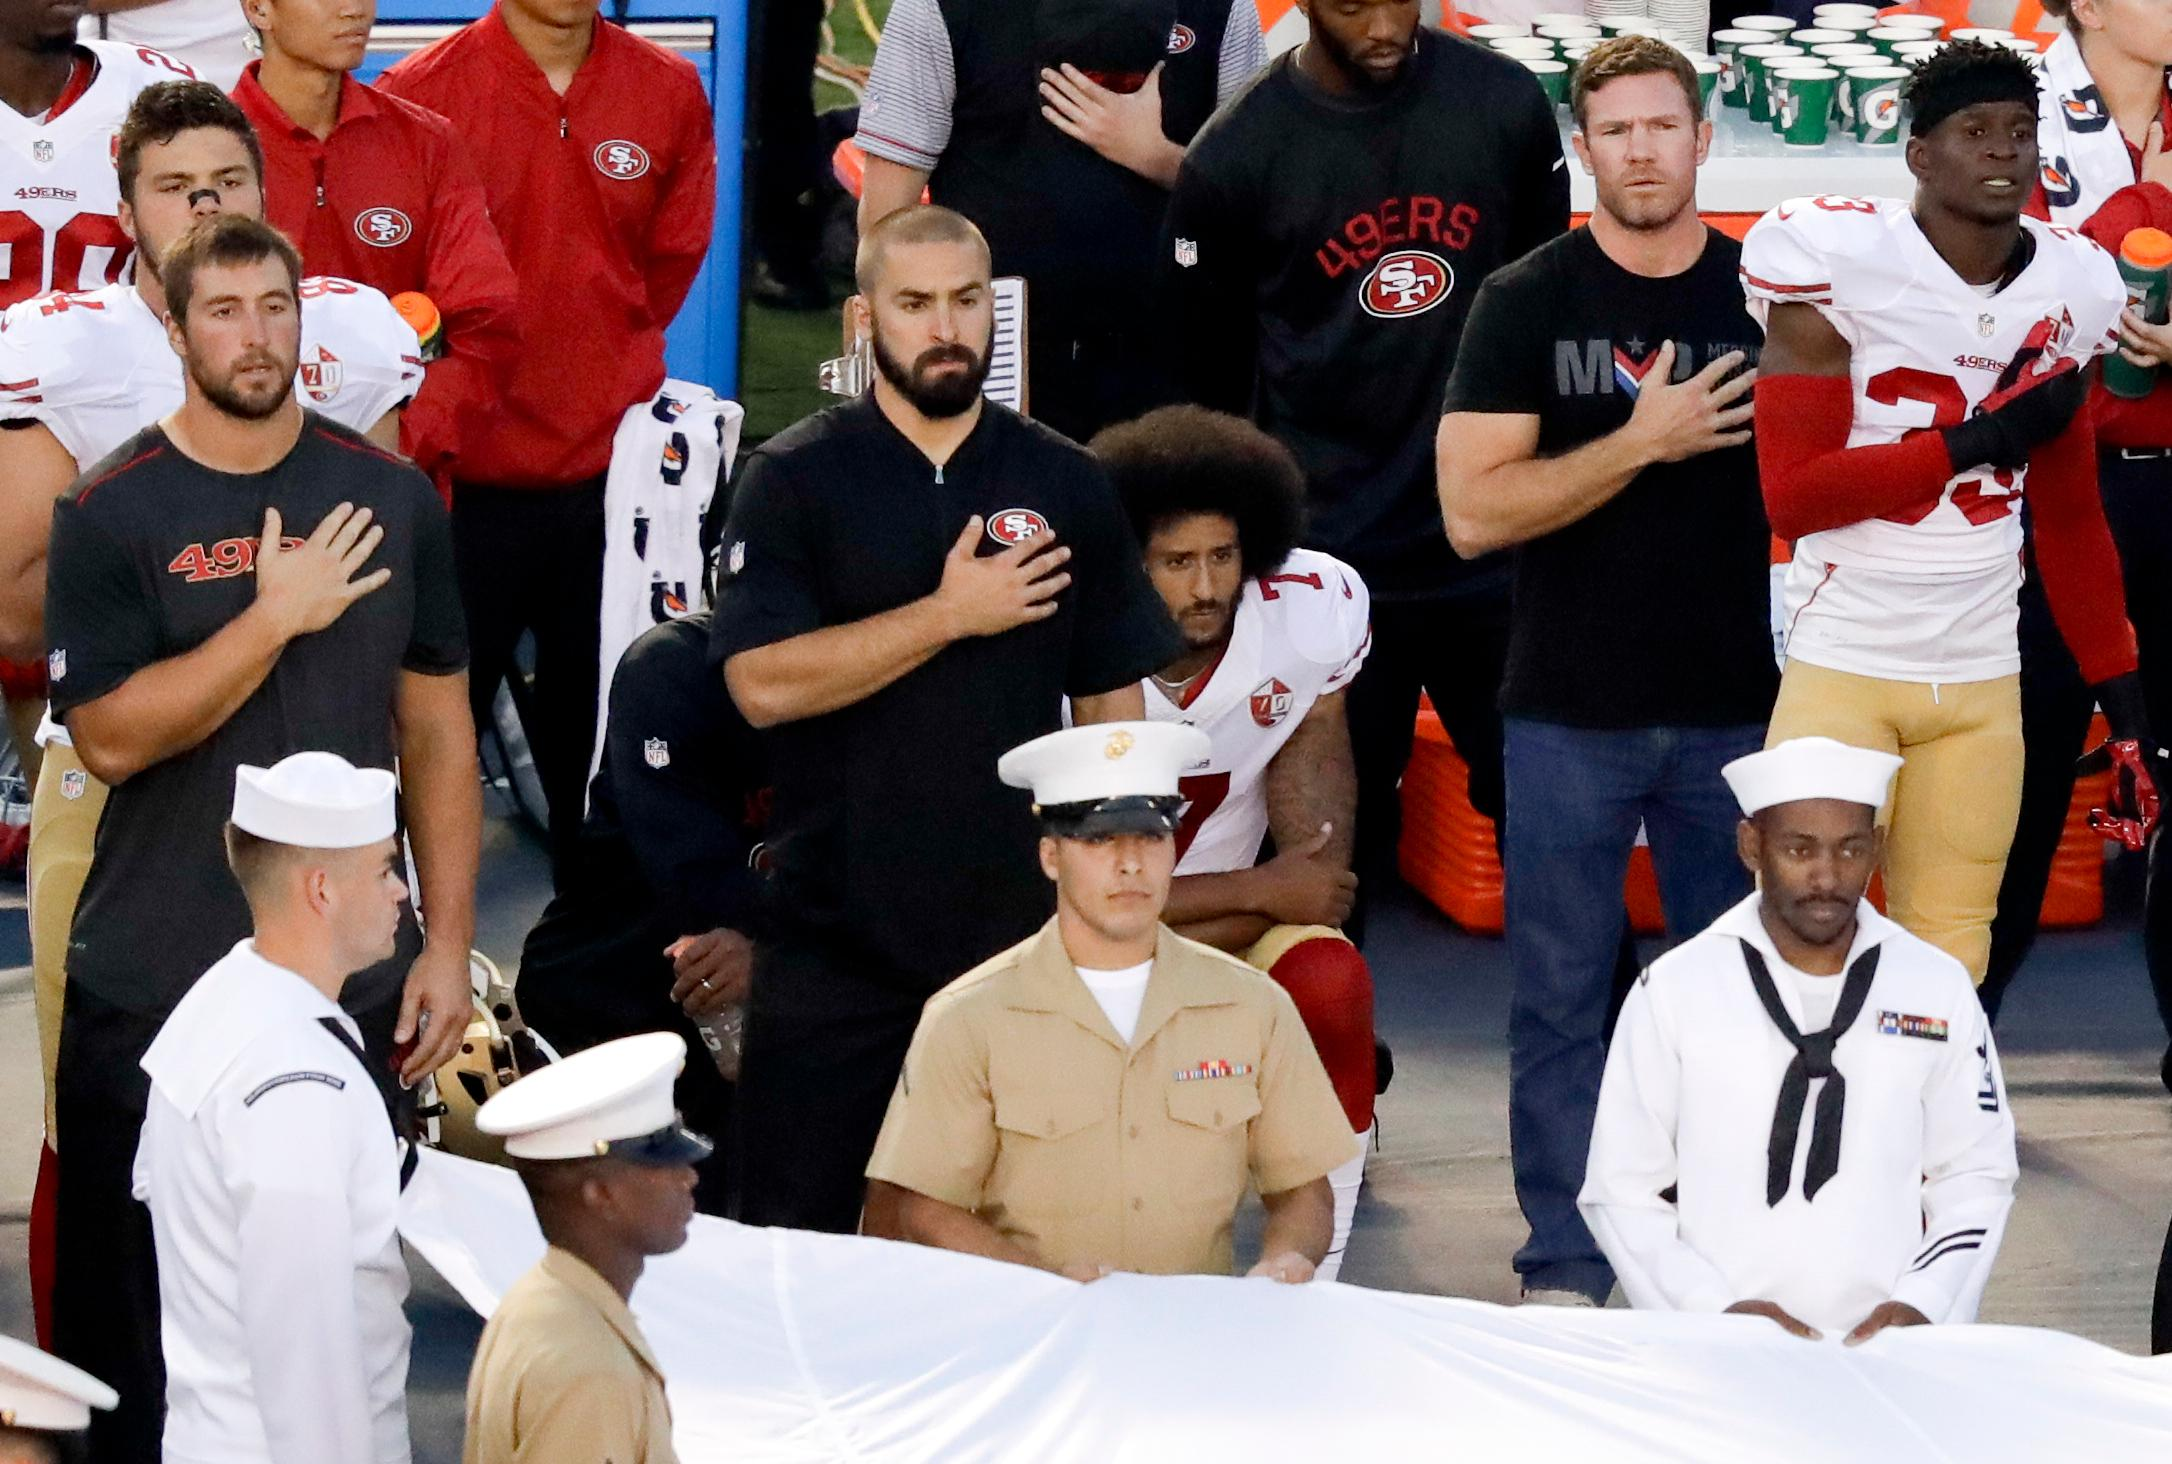 FILE - In this Sept. 1, 2016, file photo, San Francisco 49ers quarterback Colin Kaepernick, center, kneels during the National Anthem before an NFL preseason football game against the San Diego Chargers in San Diego. {&amp;nbsp;}(AP Photo/Chris Carlson, File)<p></p>